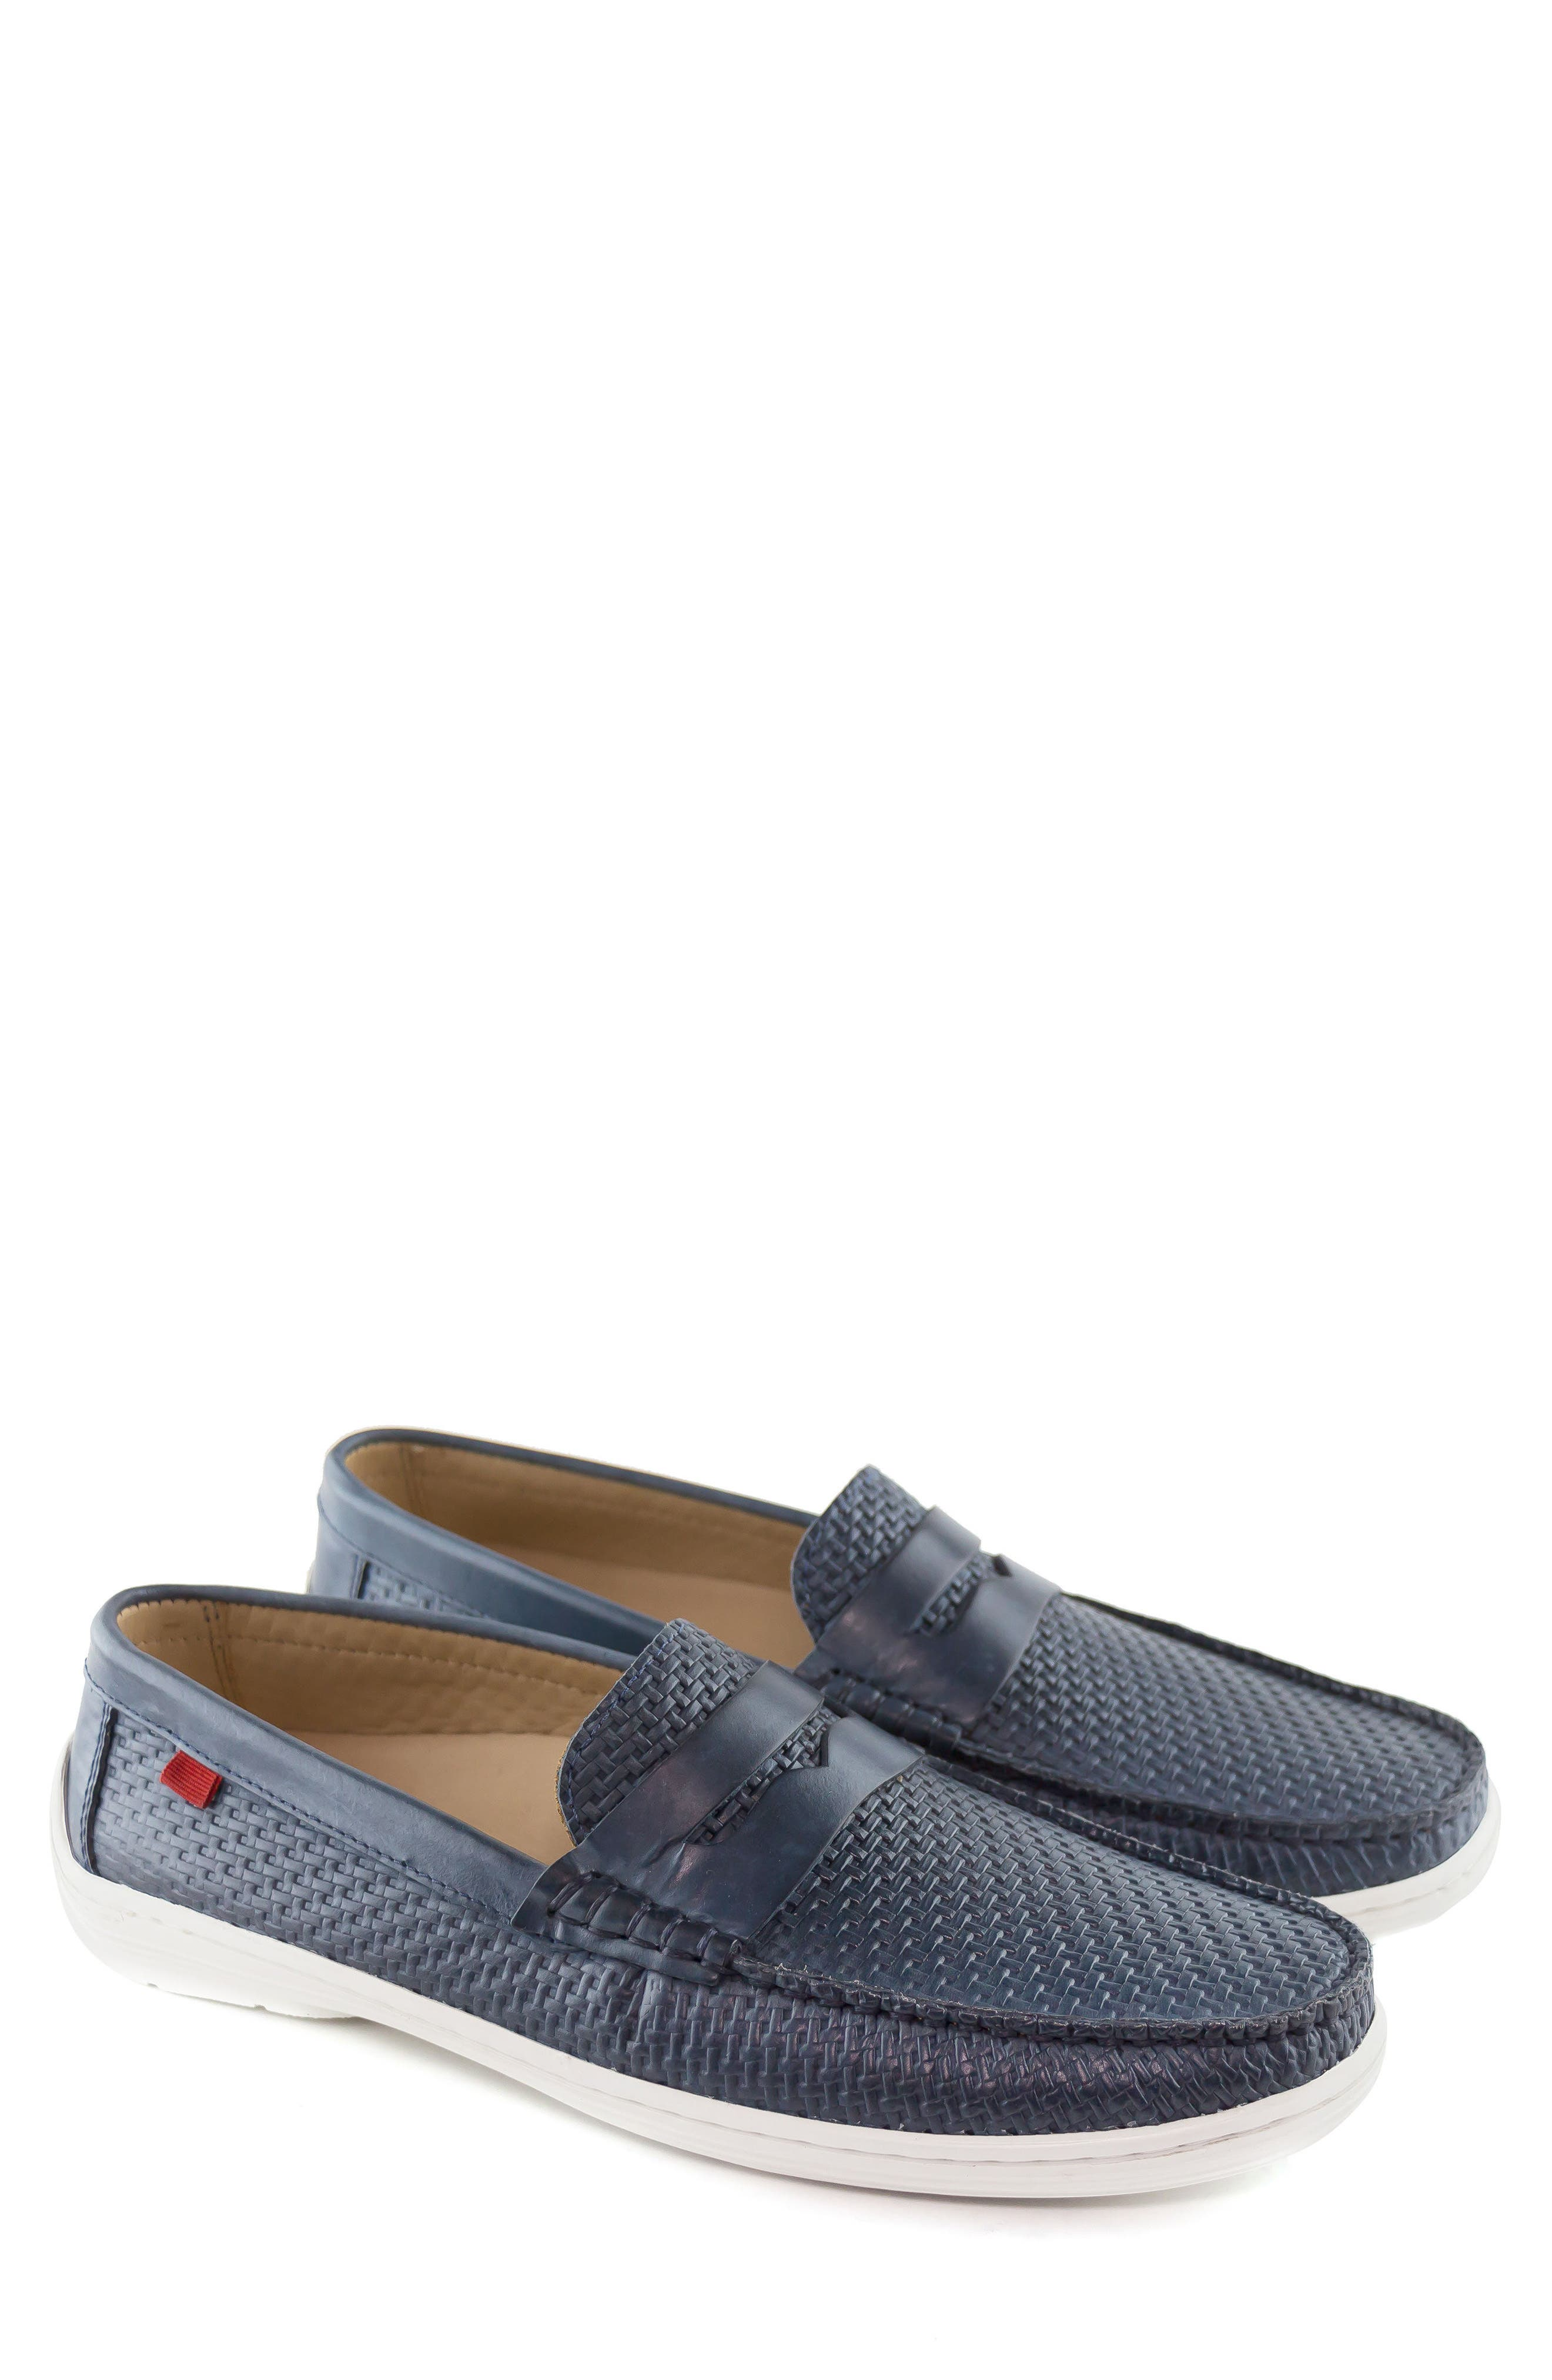 Atlantic Penny Loafer,                             Alternate thumbnail 41, color,